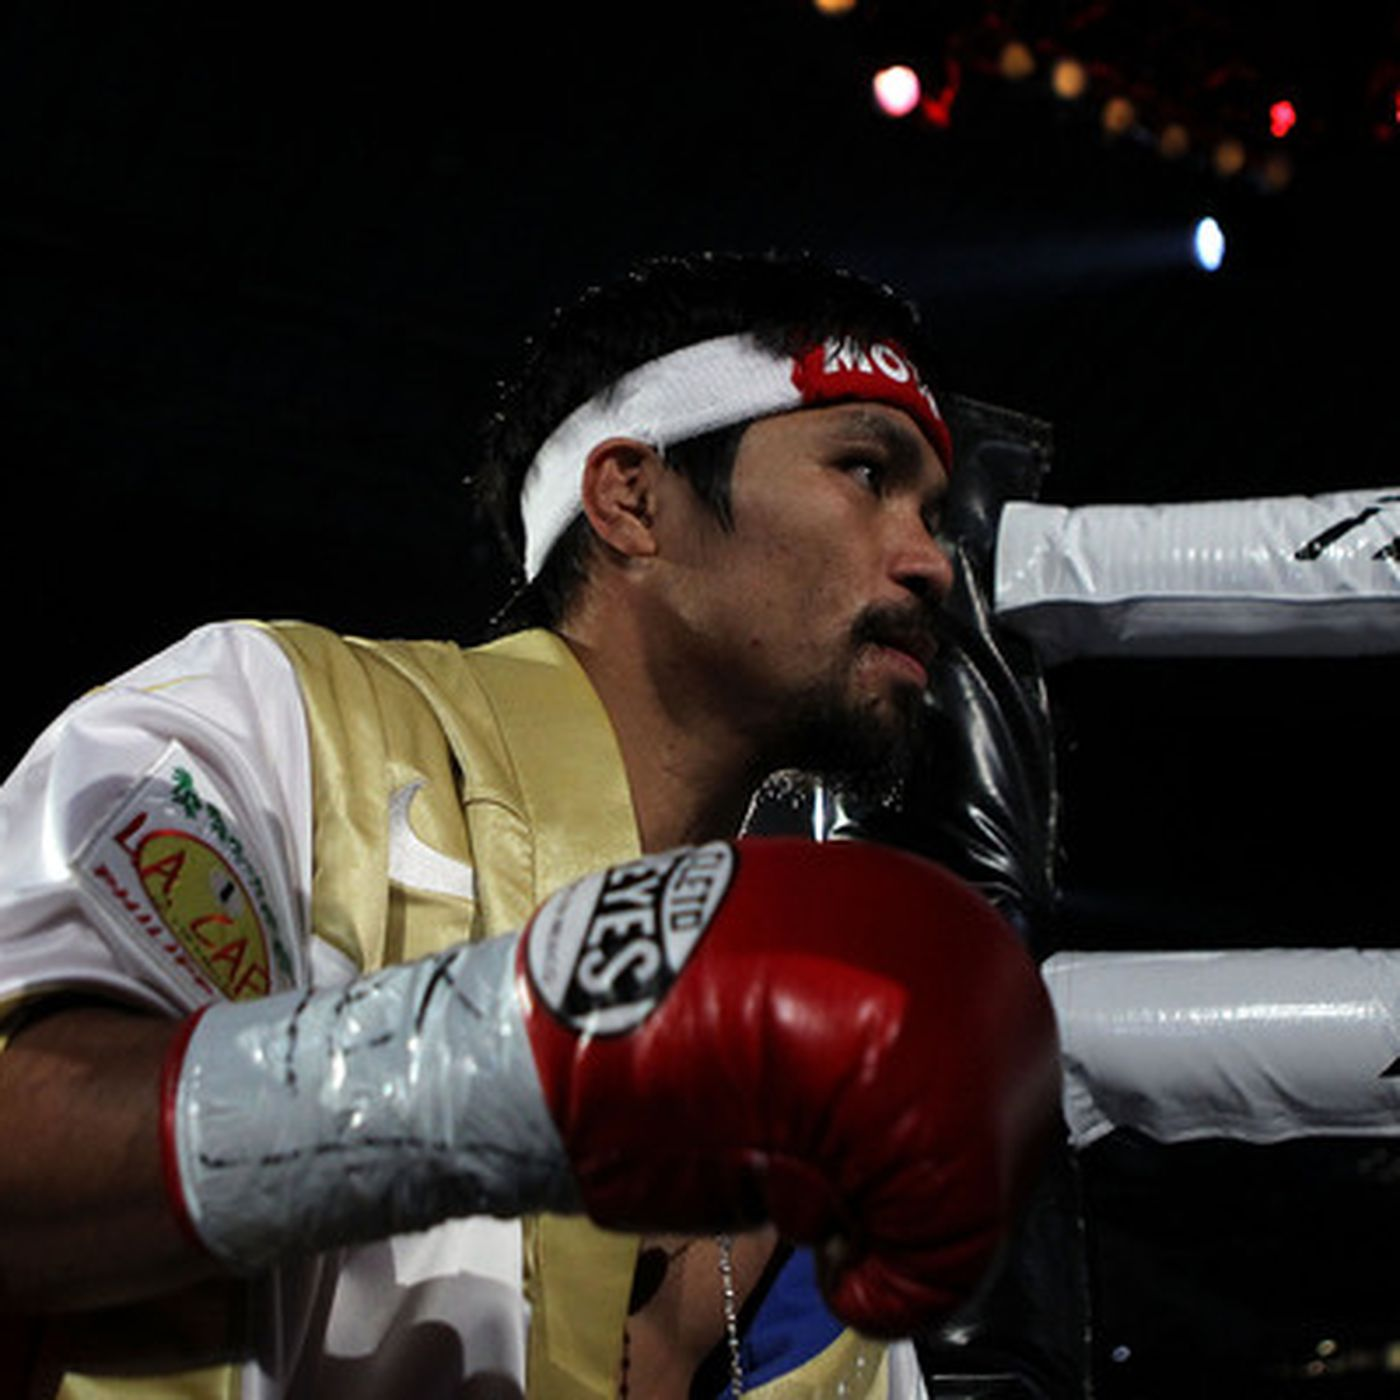 Pacquiao and Mosley Select Entrance Themes for Saturday